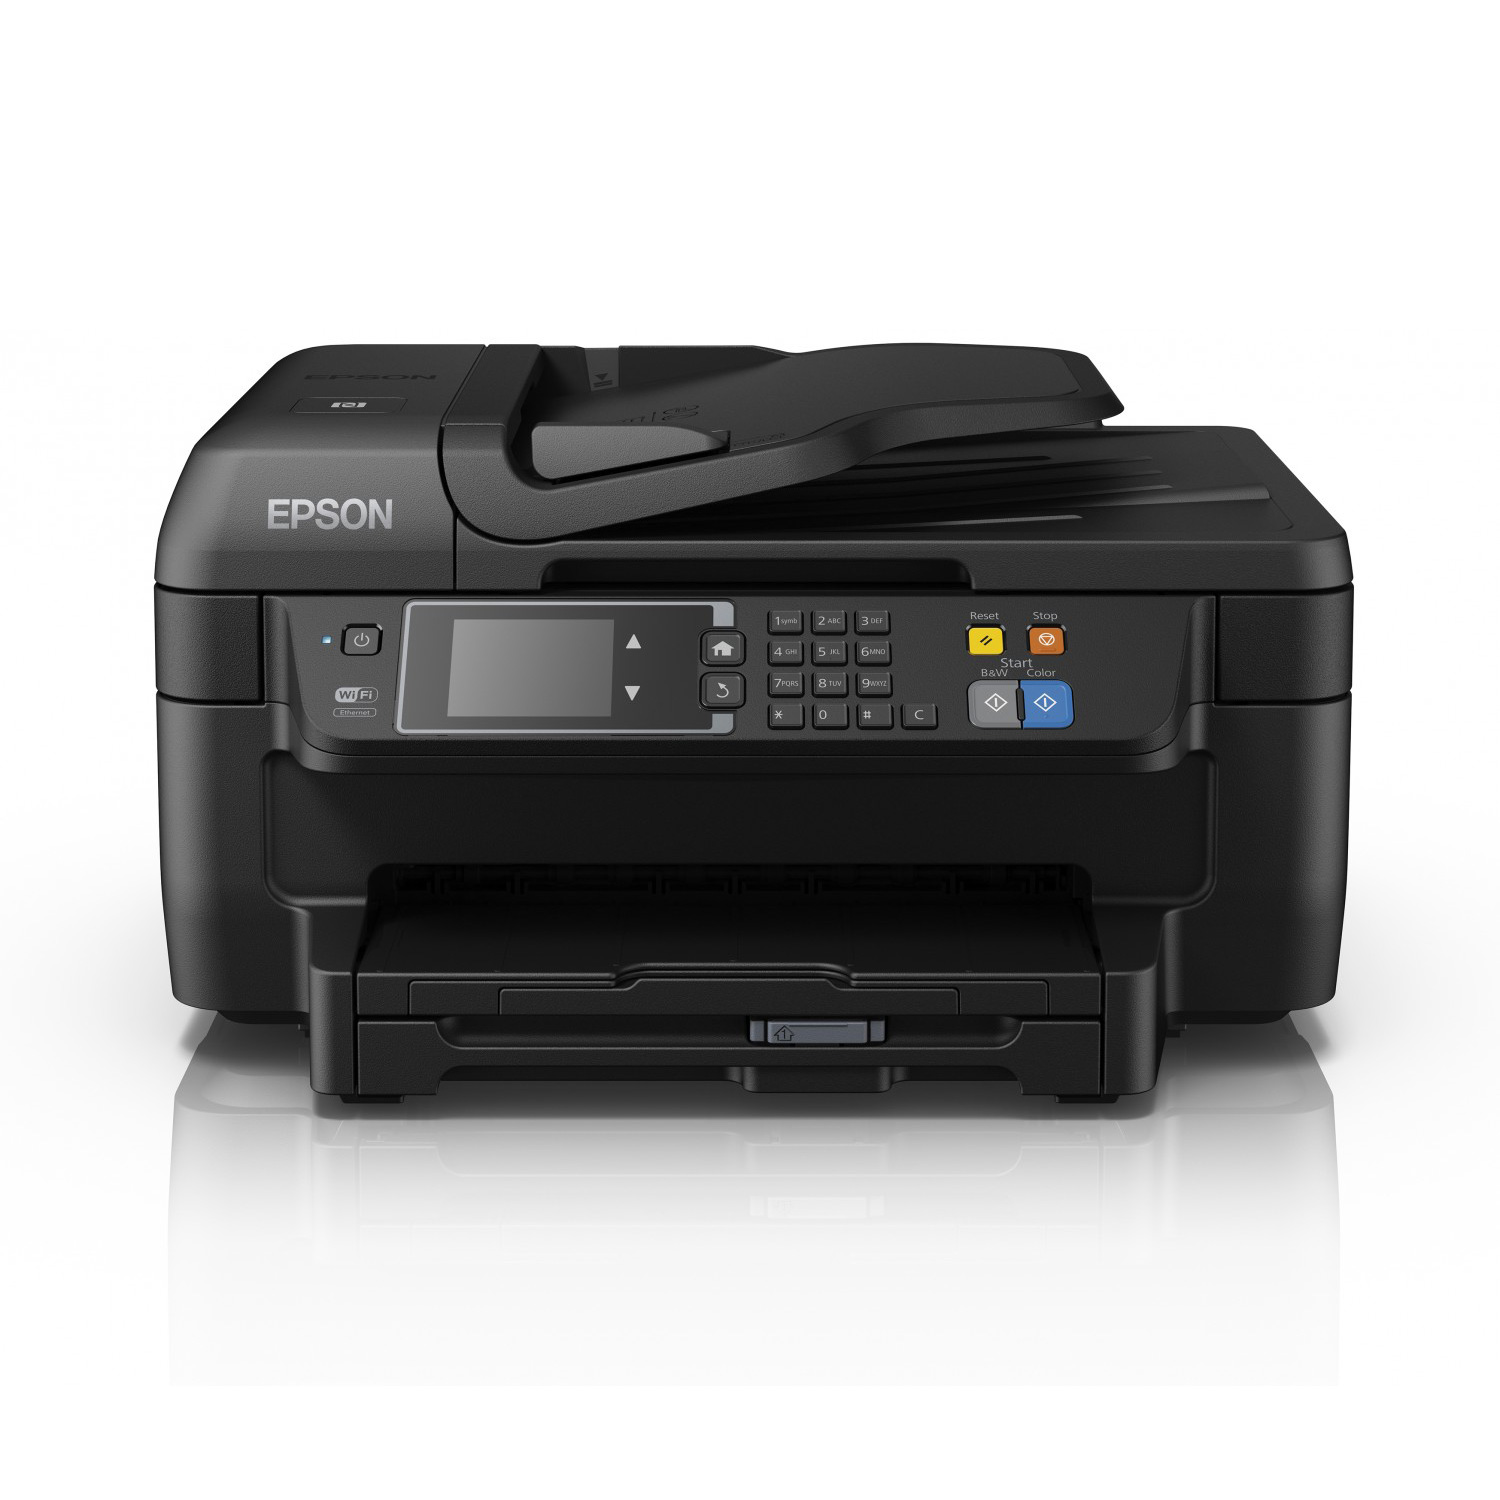 epson workforce wf 2760dwf imprimante multifonction epson sur. Black Bedroom Furniture Sets. Home Design Ideas